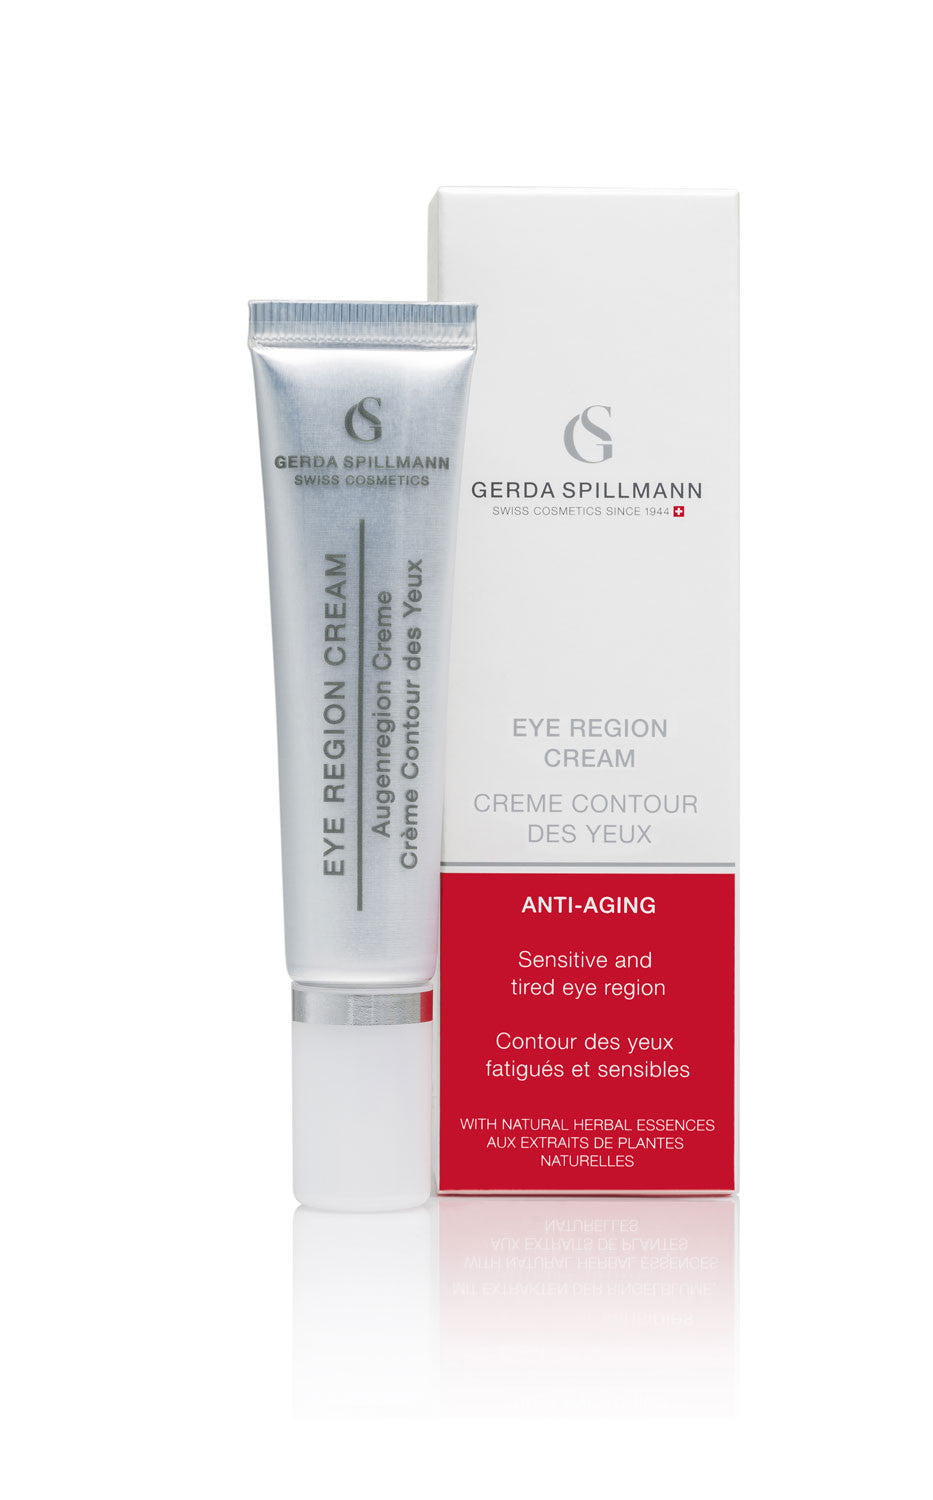 EYE REGION CREAM 15ml